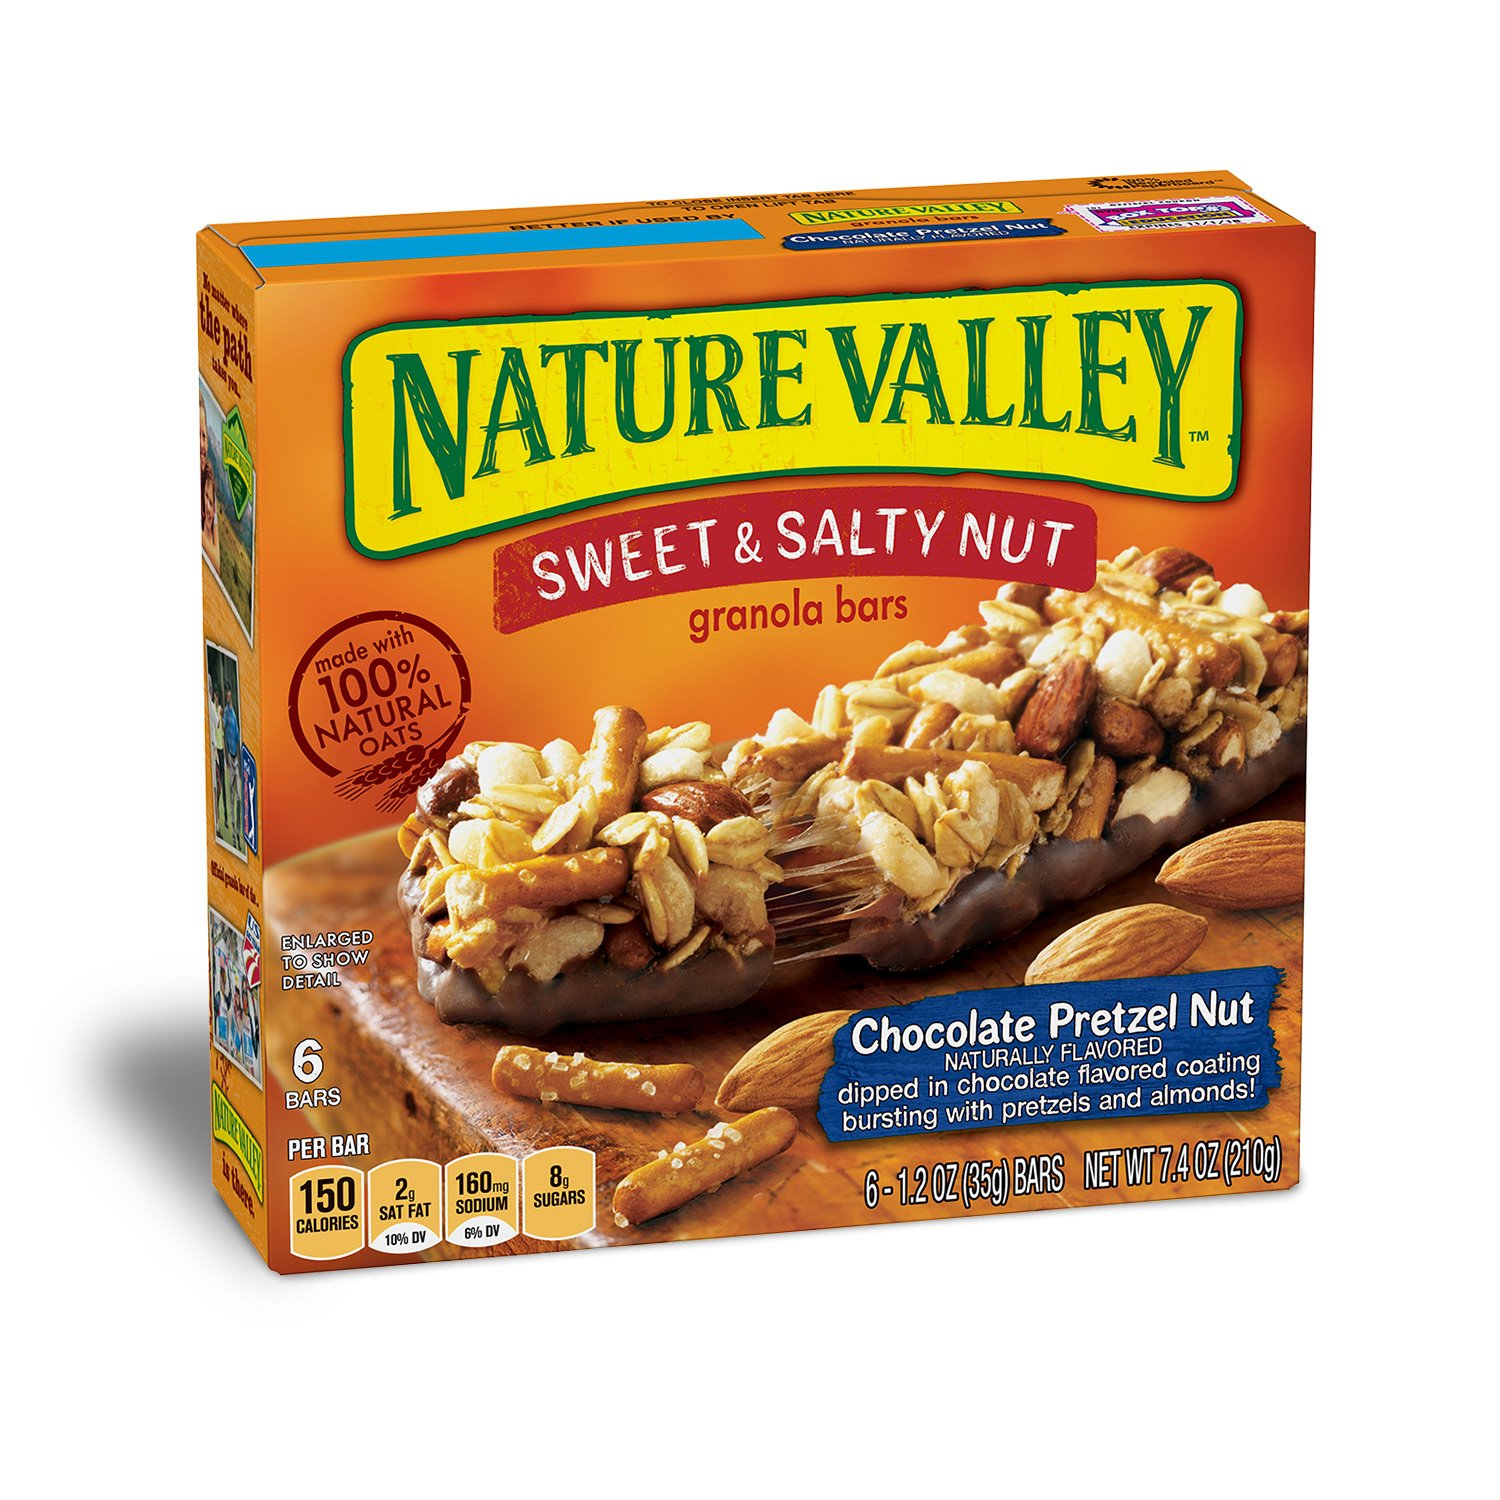 Nature Valley Granola Bars, Sweet and Salty Nut, Chocolate Pretzel Nut, 6 Bars - 1.2 oz (Pack of 12)